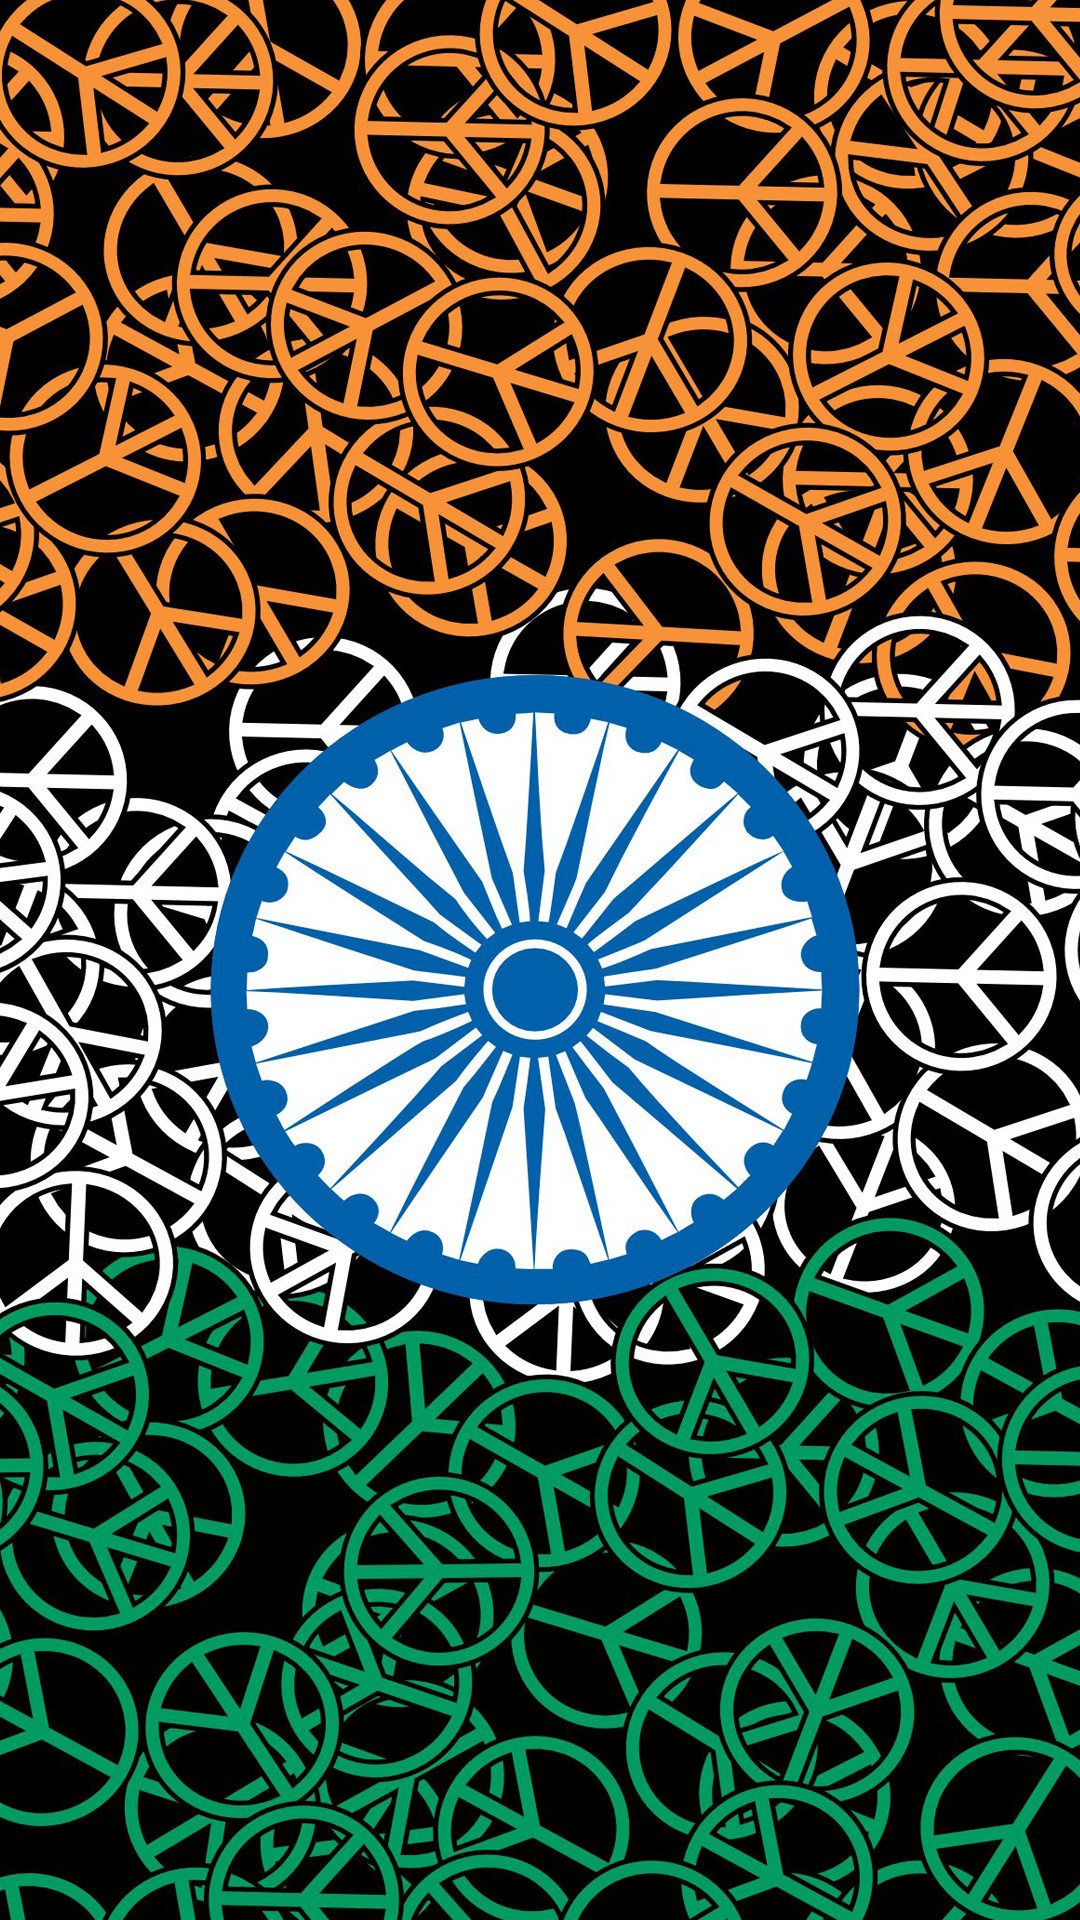 File To Download For India Flag For Mobile Phone Wallpaper - Indian Flag Images Hd For Mobile - HD Wallpaper